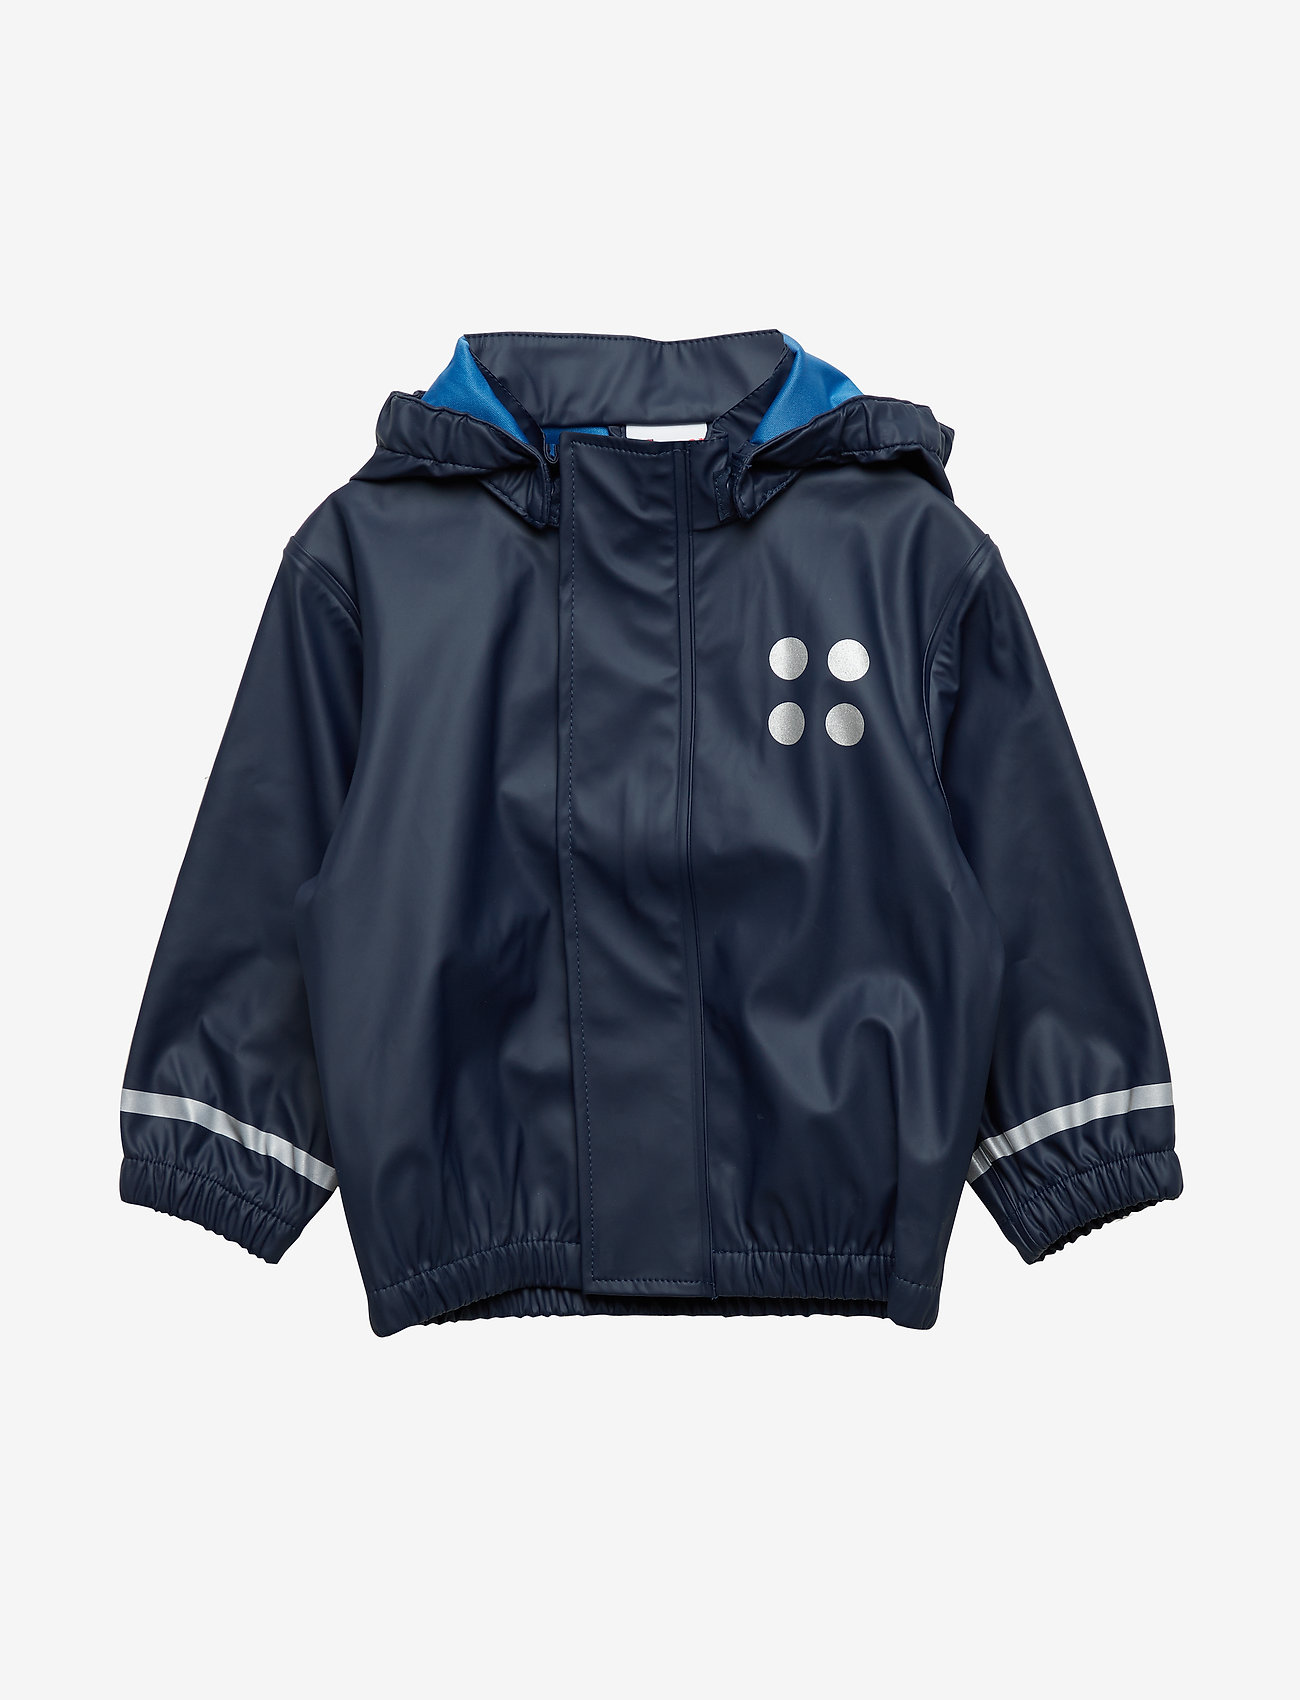 Lego wear - JUSTICE 101 - RAIN JACKET - vestes - dark navy - 0